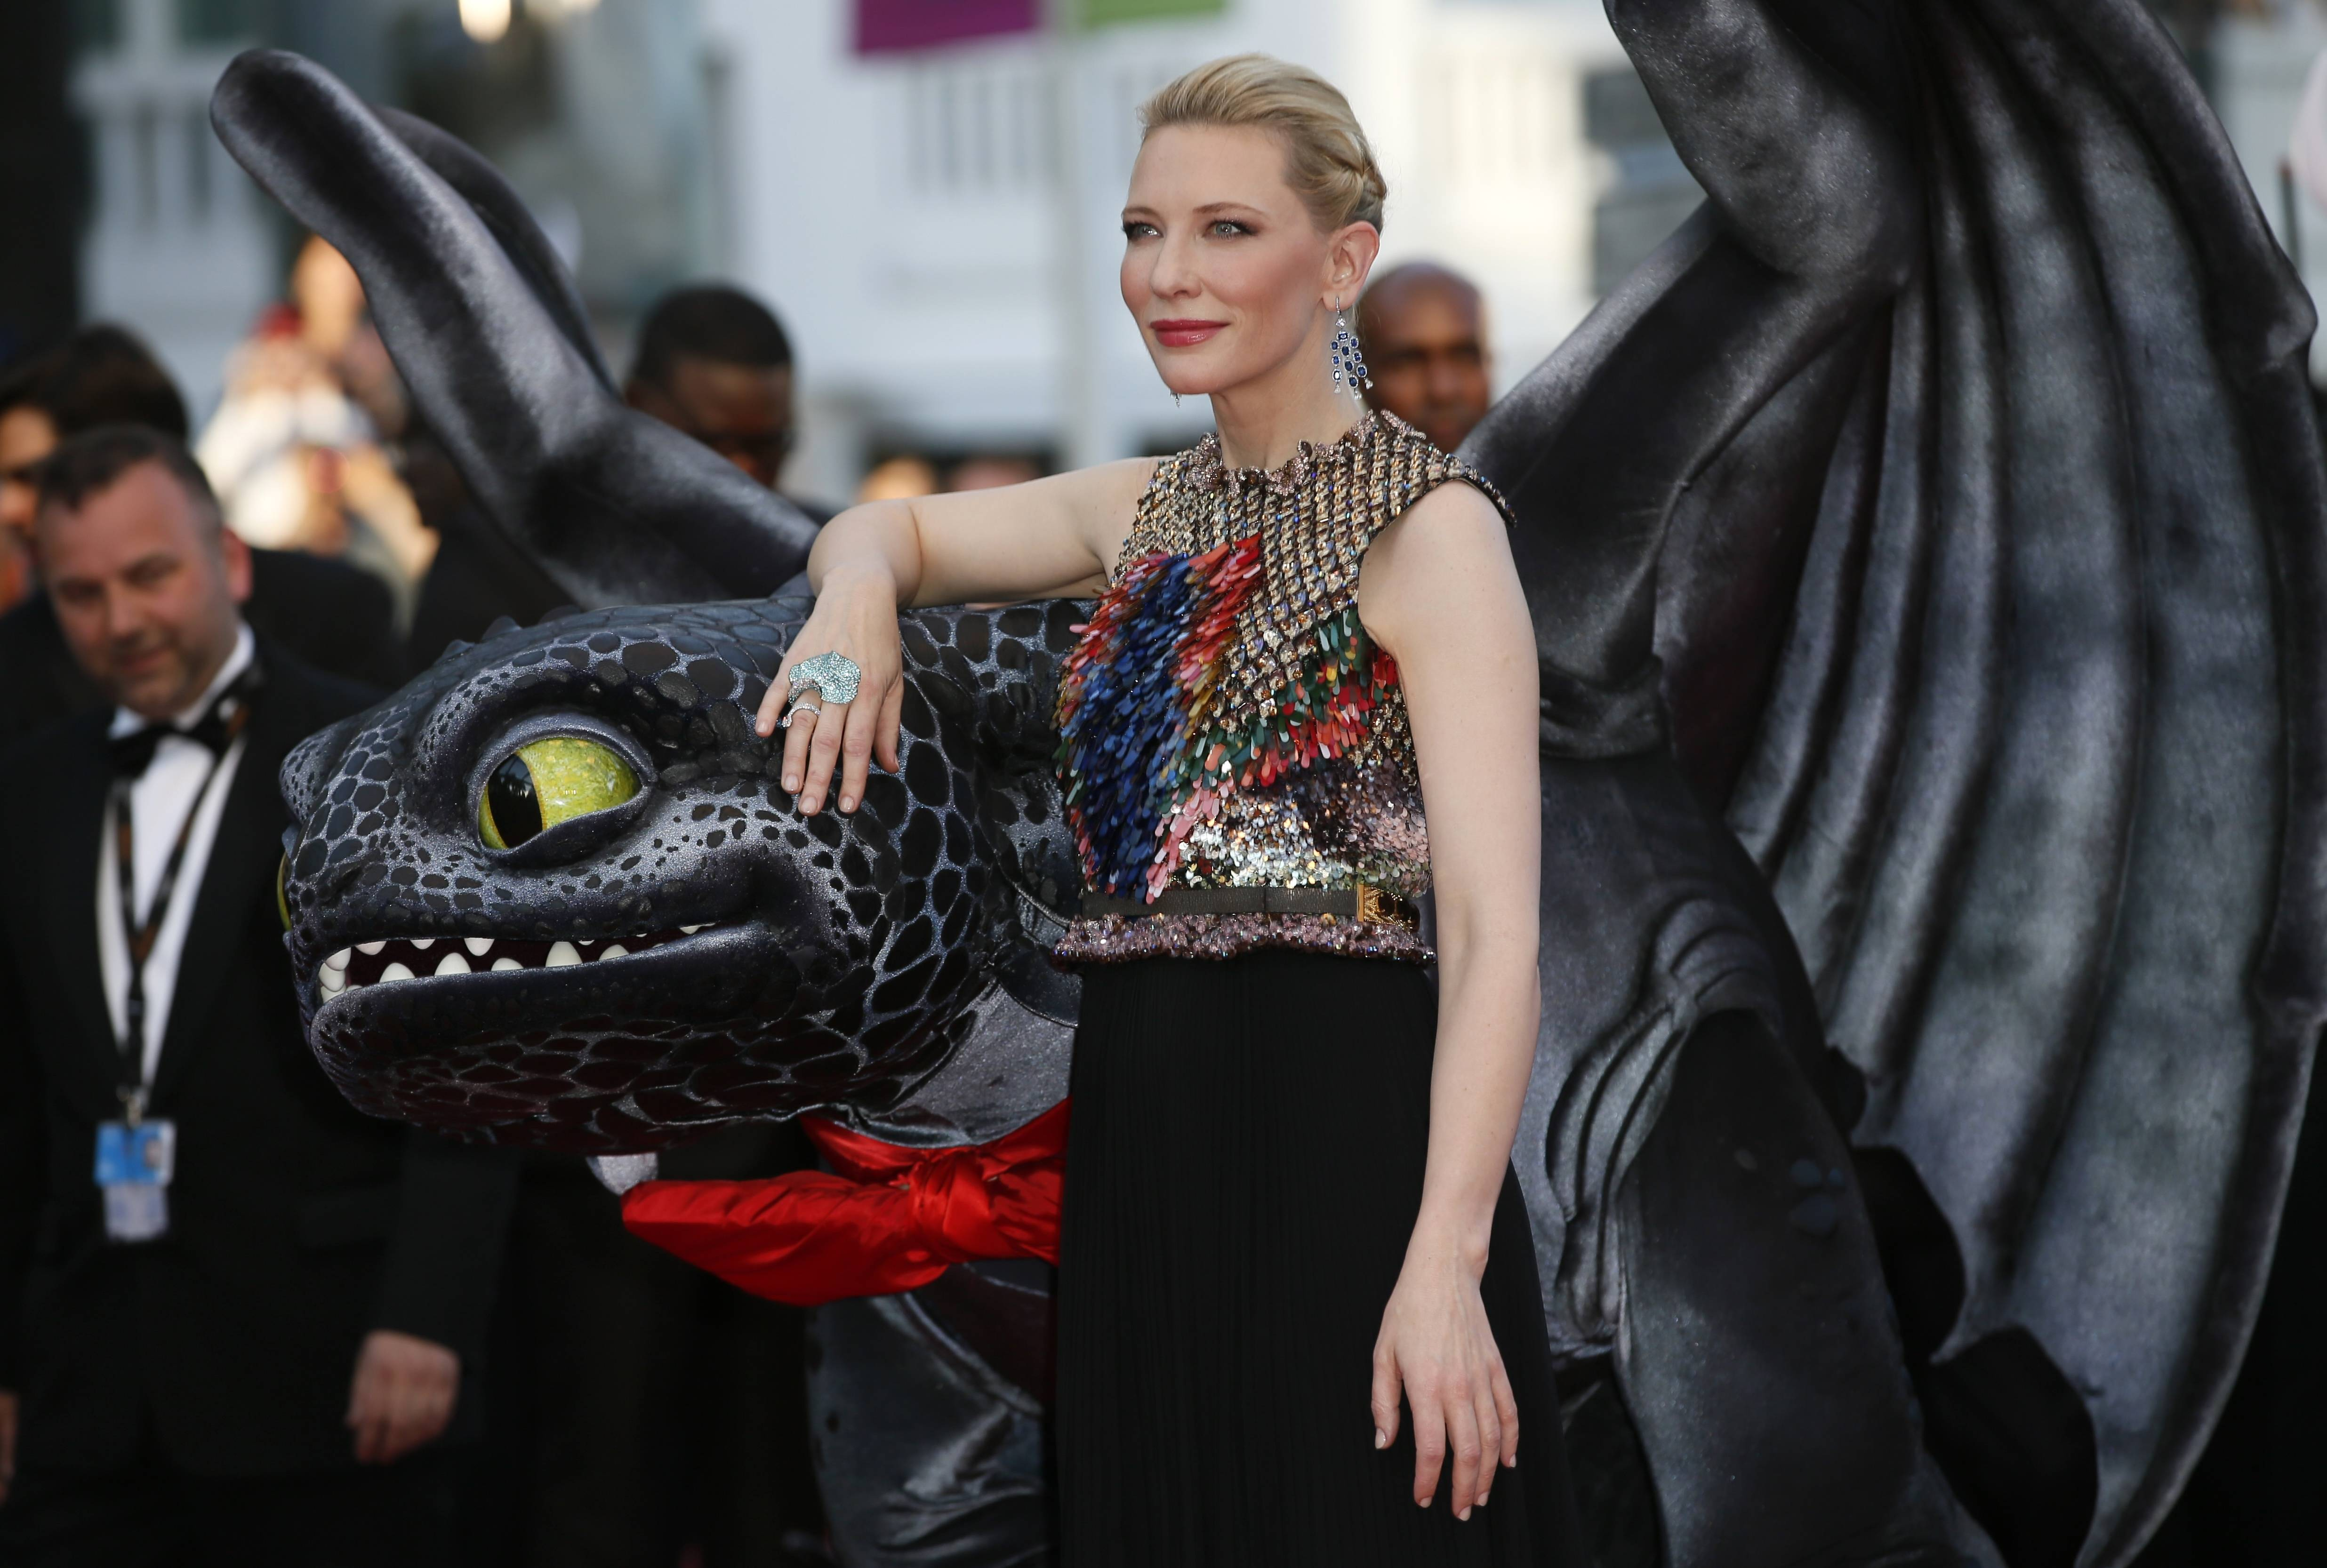 "Actress Cate Blanchett touches a giant puppet of the dragon named Toothless during arrivals for May 16 the screening of ""How to Train Your Dragon 2"" at the 67th annual Cannes Film Festival in southern France."